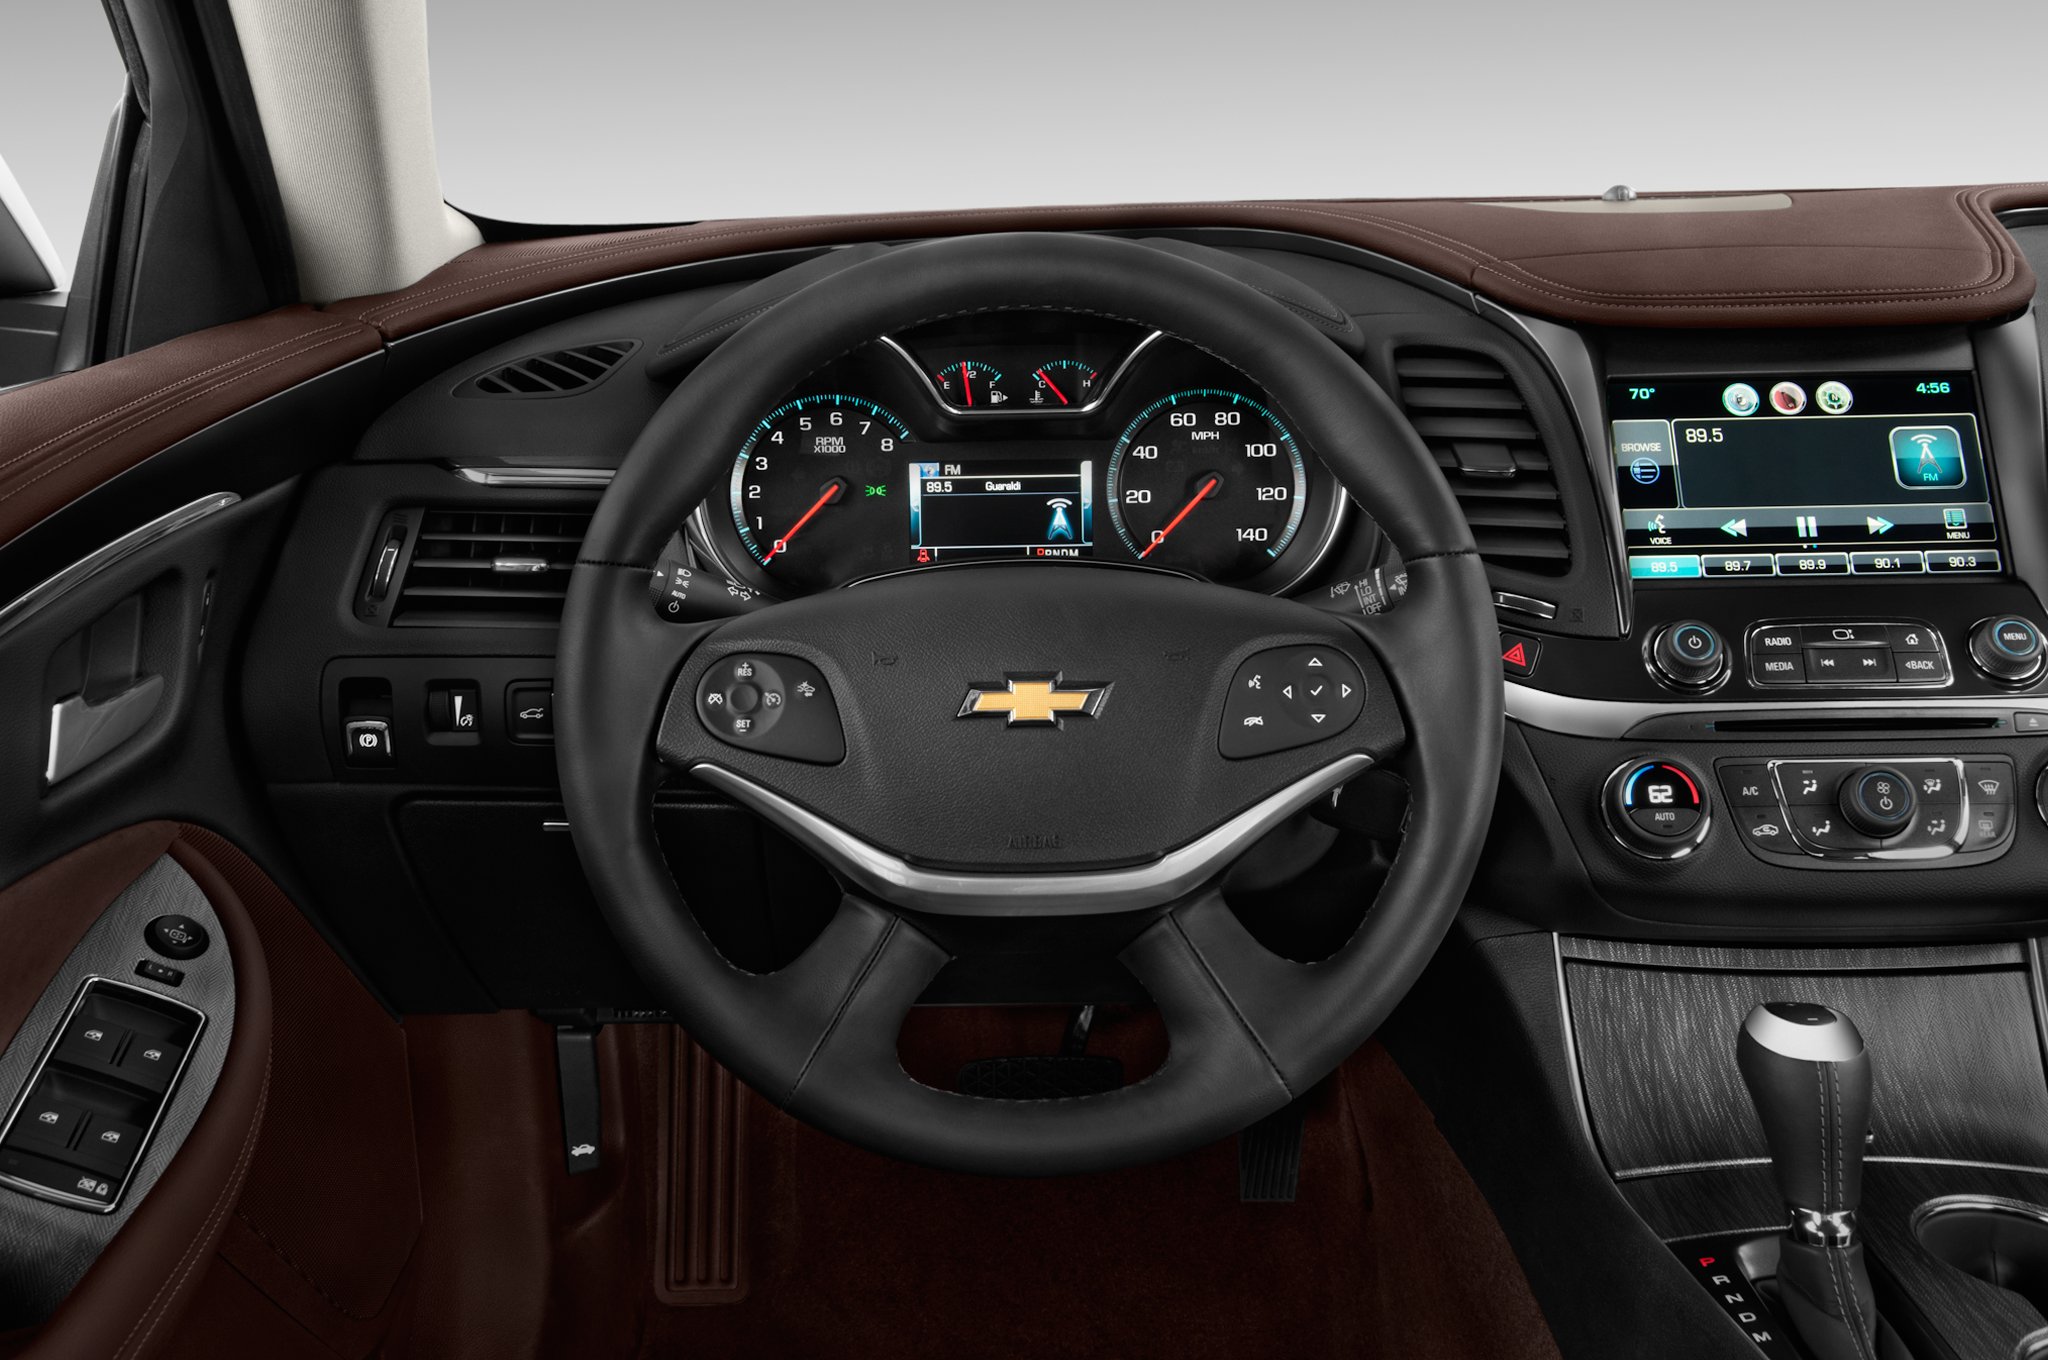 Chevrolet Releases New Impala Midnight Edition Appearance Package Skoda Steering Wheel Wiring Diagram 34 37